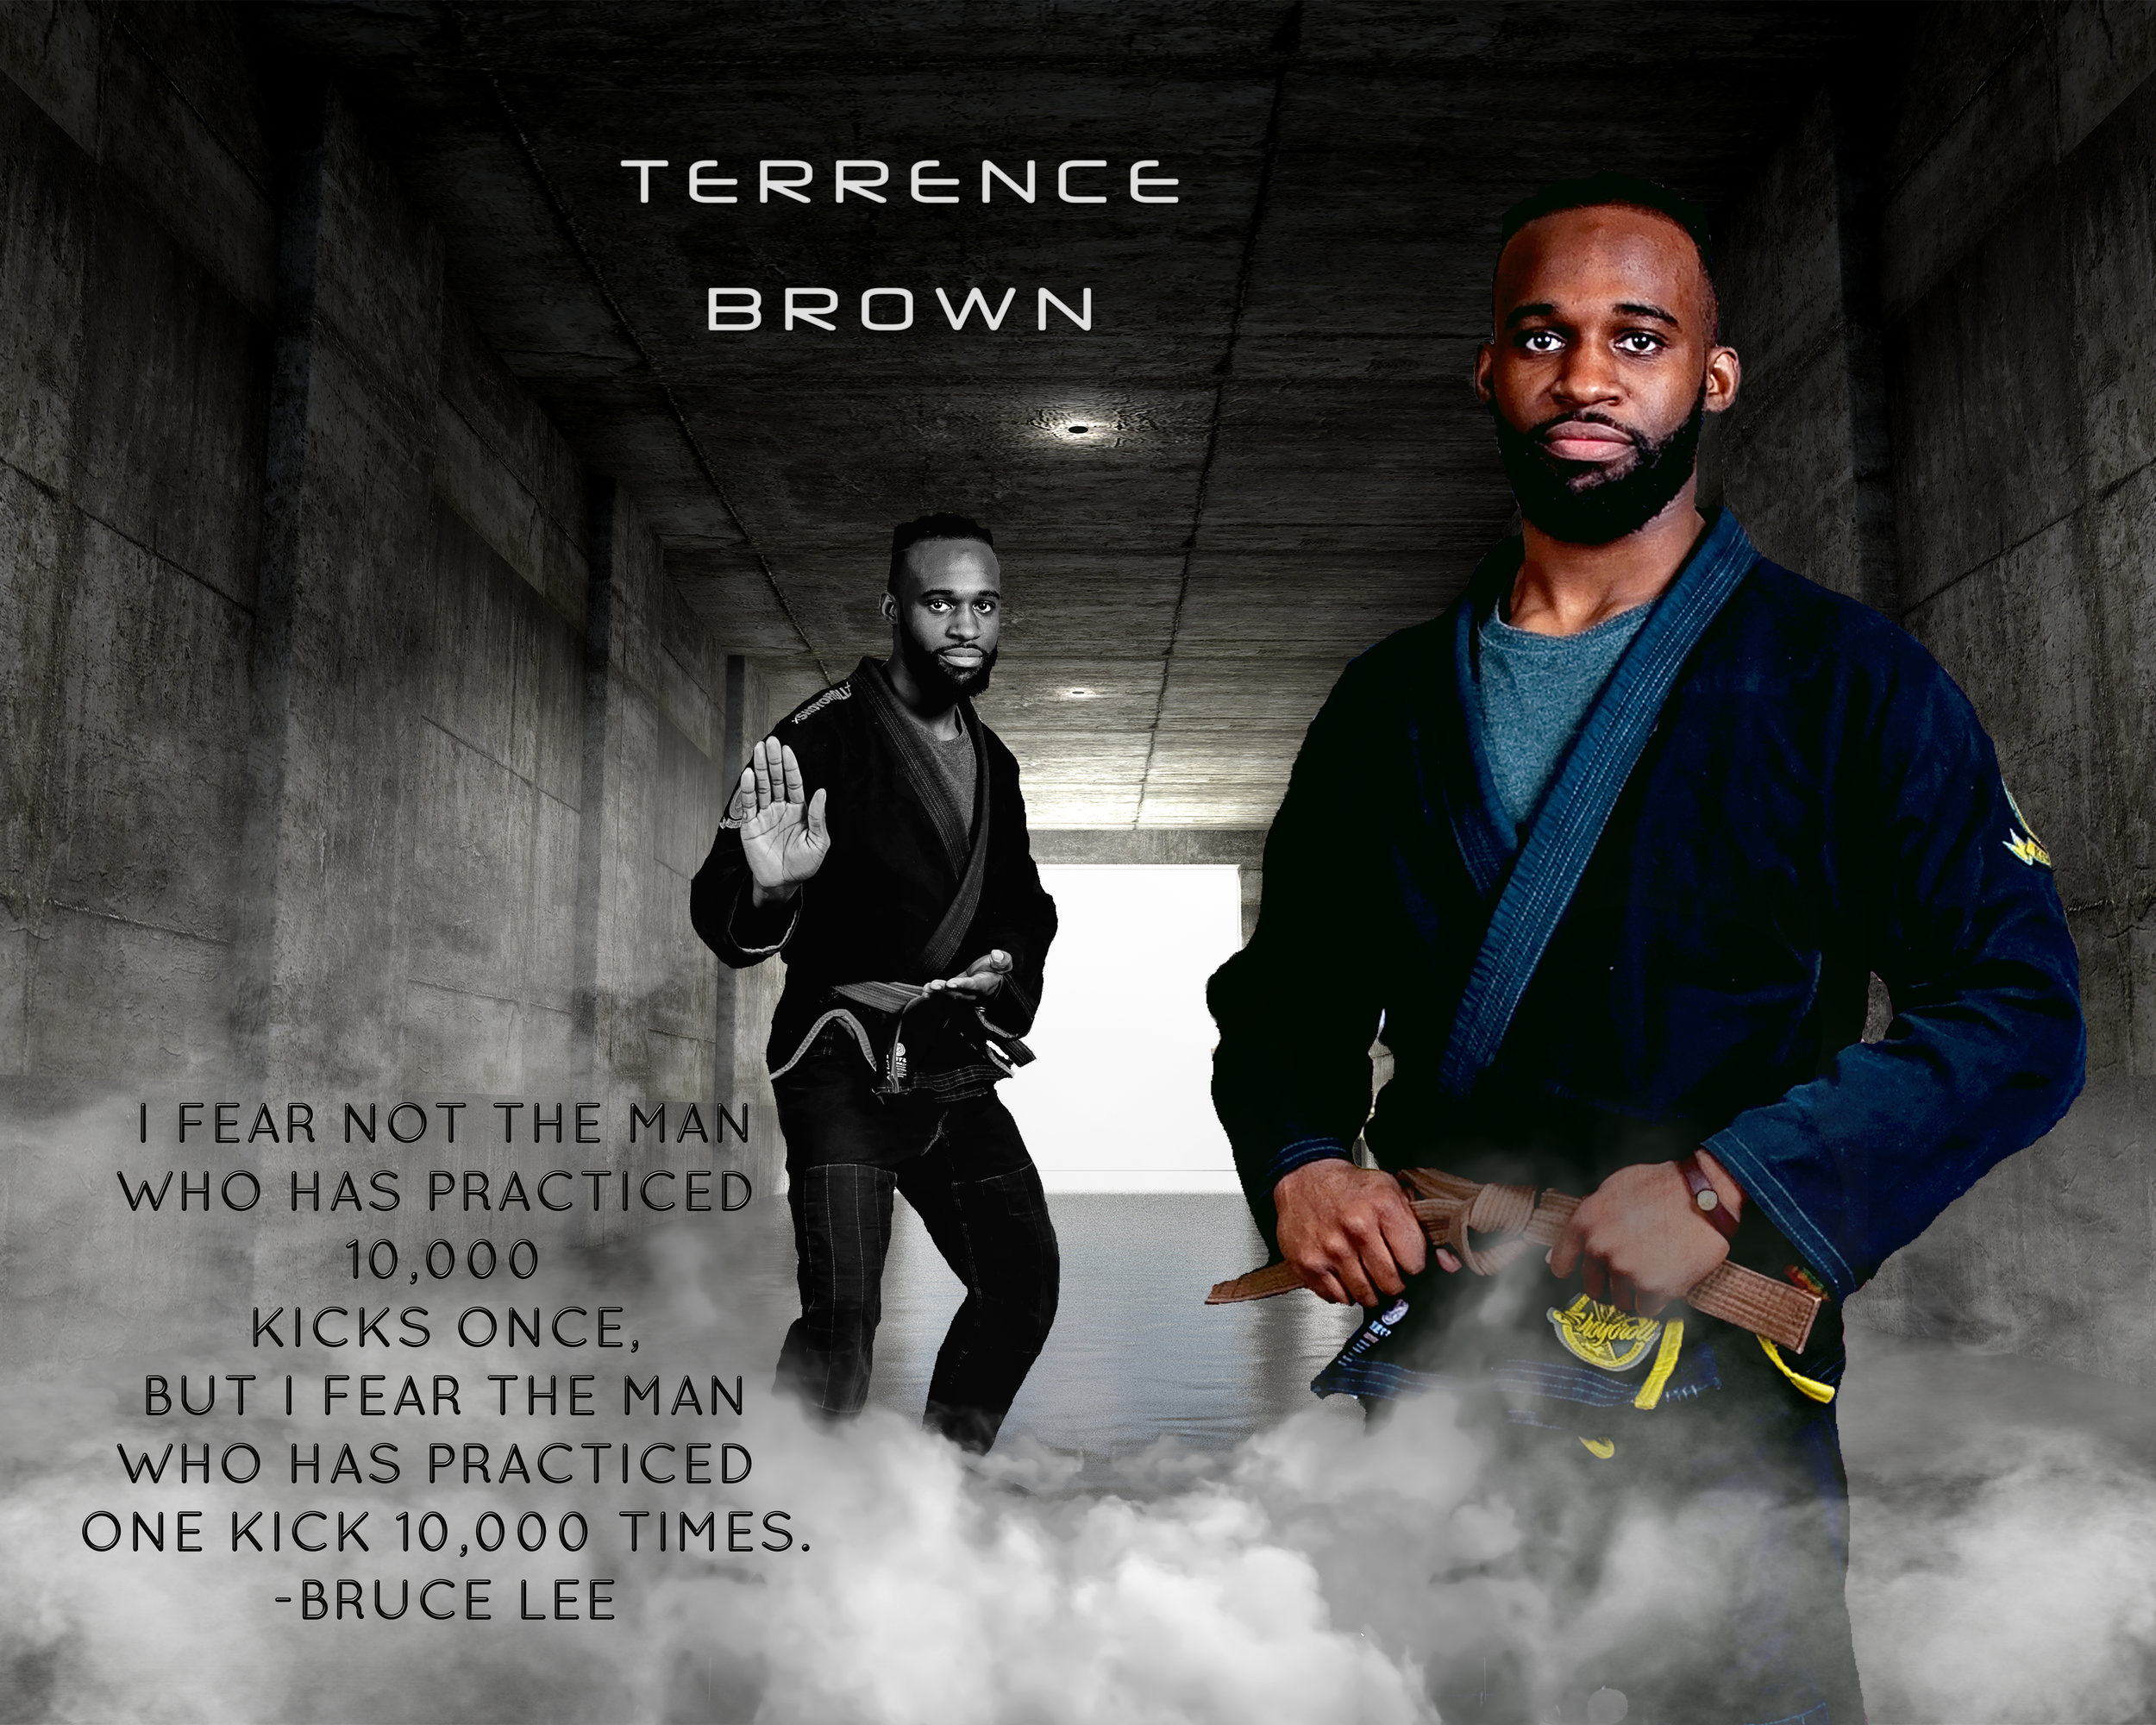 Mr. Terrence Brown...   Mr. T,  as we know him,  holds a Brown Belt in Kenpo Karate and is working towards his First Degree Black Belt.  Terrence is also a practitioner of Brazilian Jiu-Jitsu where he holds a blue belt.  Terrence is currently a student, working towards his Bachelor's Degree at Georgia Gwinnett College, majoring in Exercise Science. He ultimately plans to attend Emory University for his Masters and Doctorate in Physical Therapy, so he can own his own practice one day.